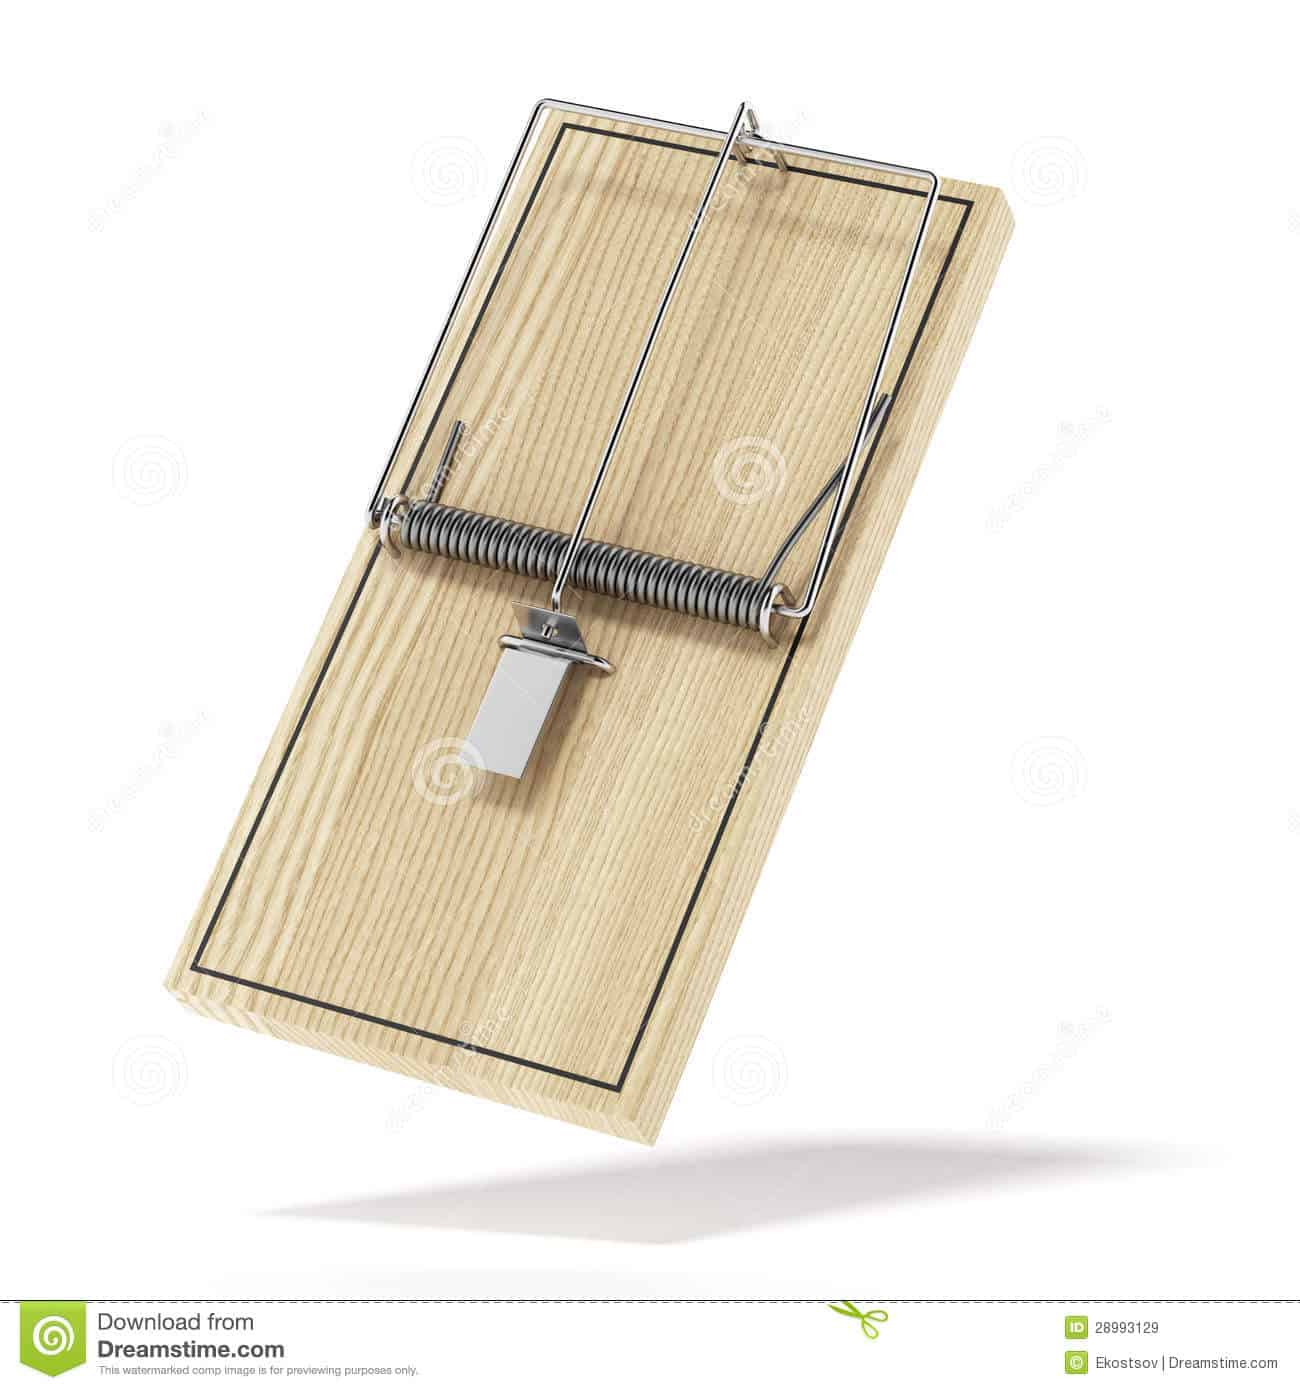 How to Set a Wooden Mouse Trap (Even Your Kids Can Do It)